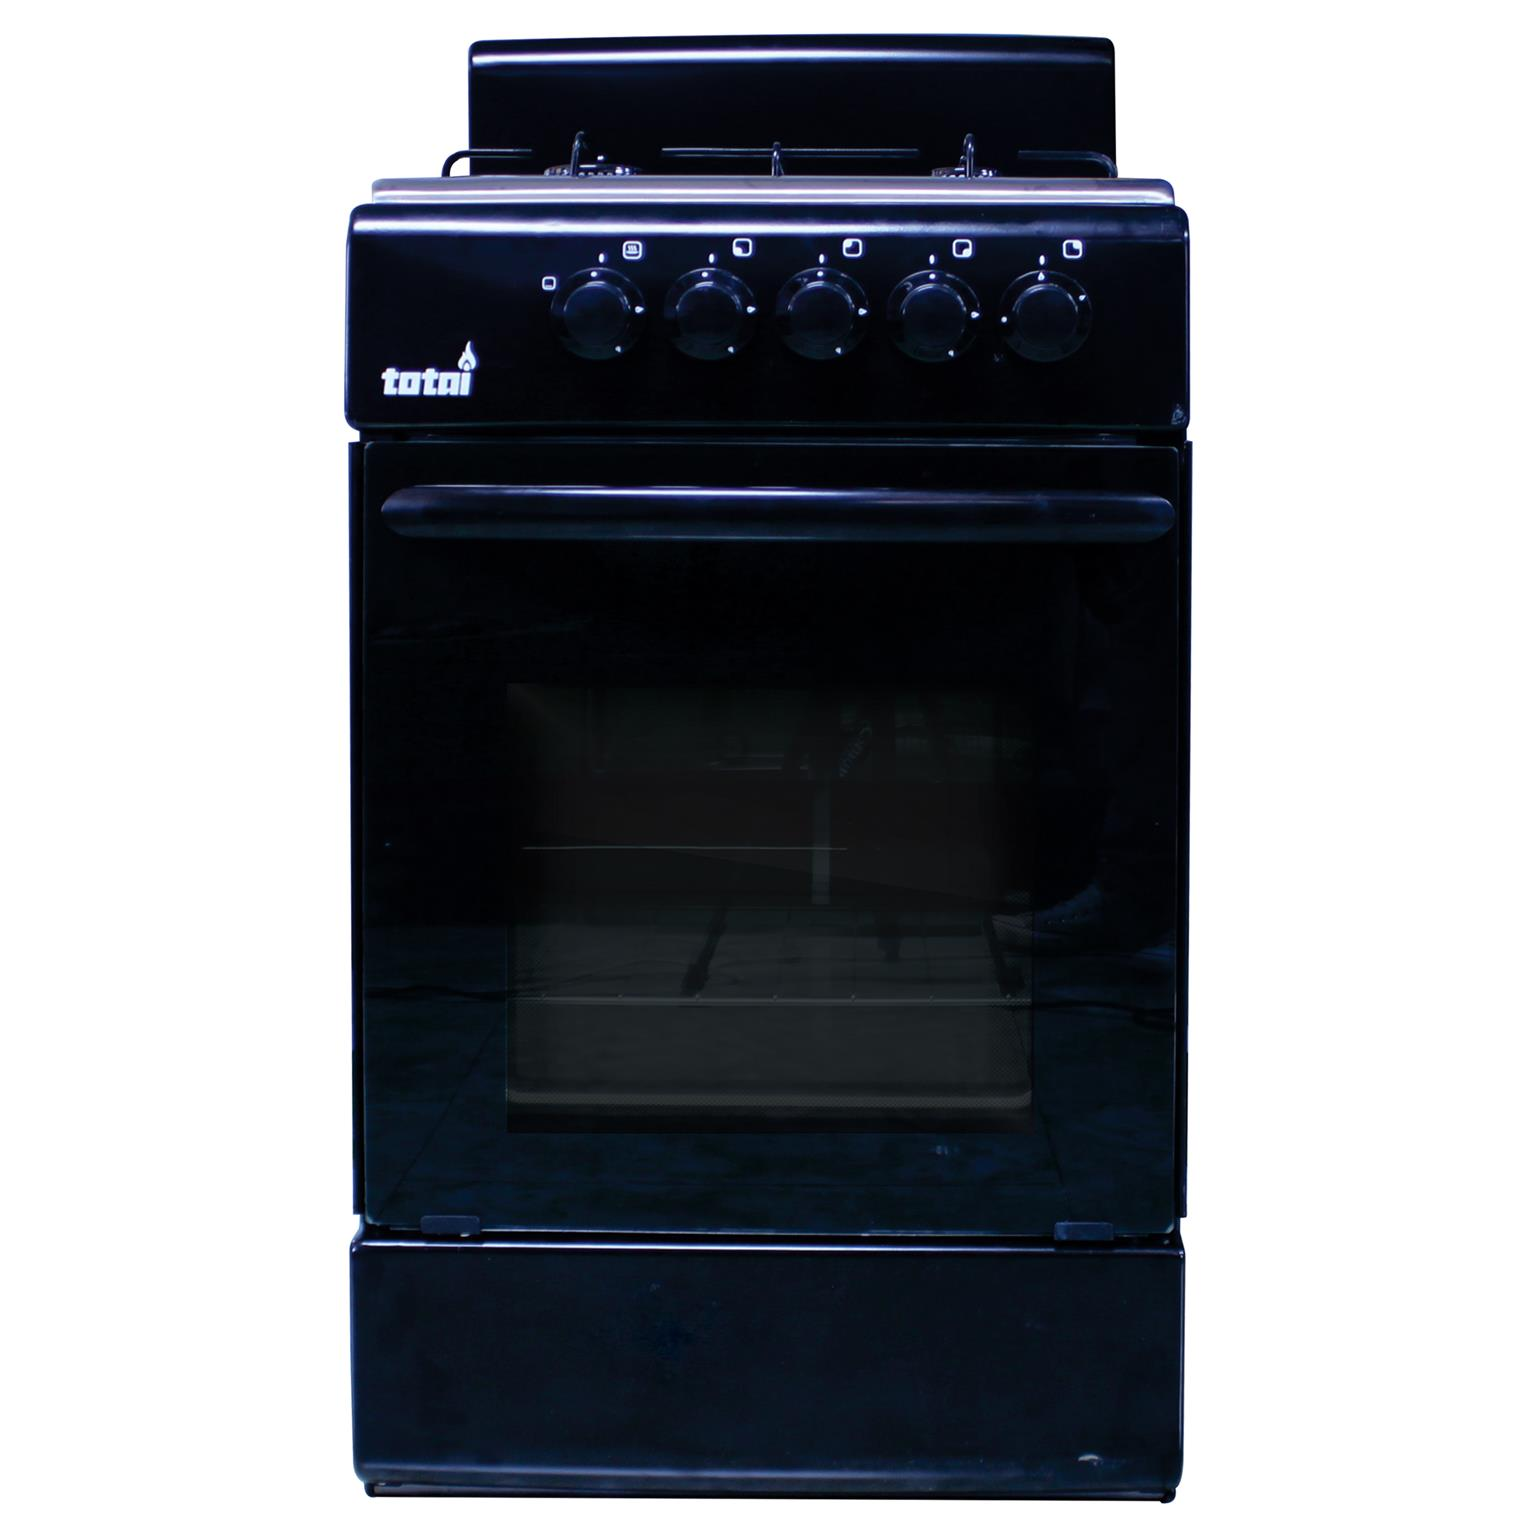 GAS STOVE 4 PLATE WITH OVEN